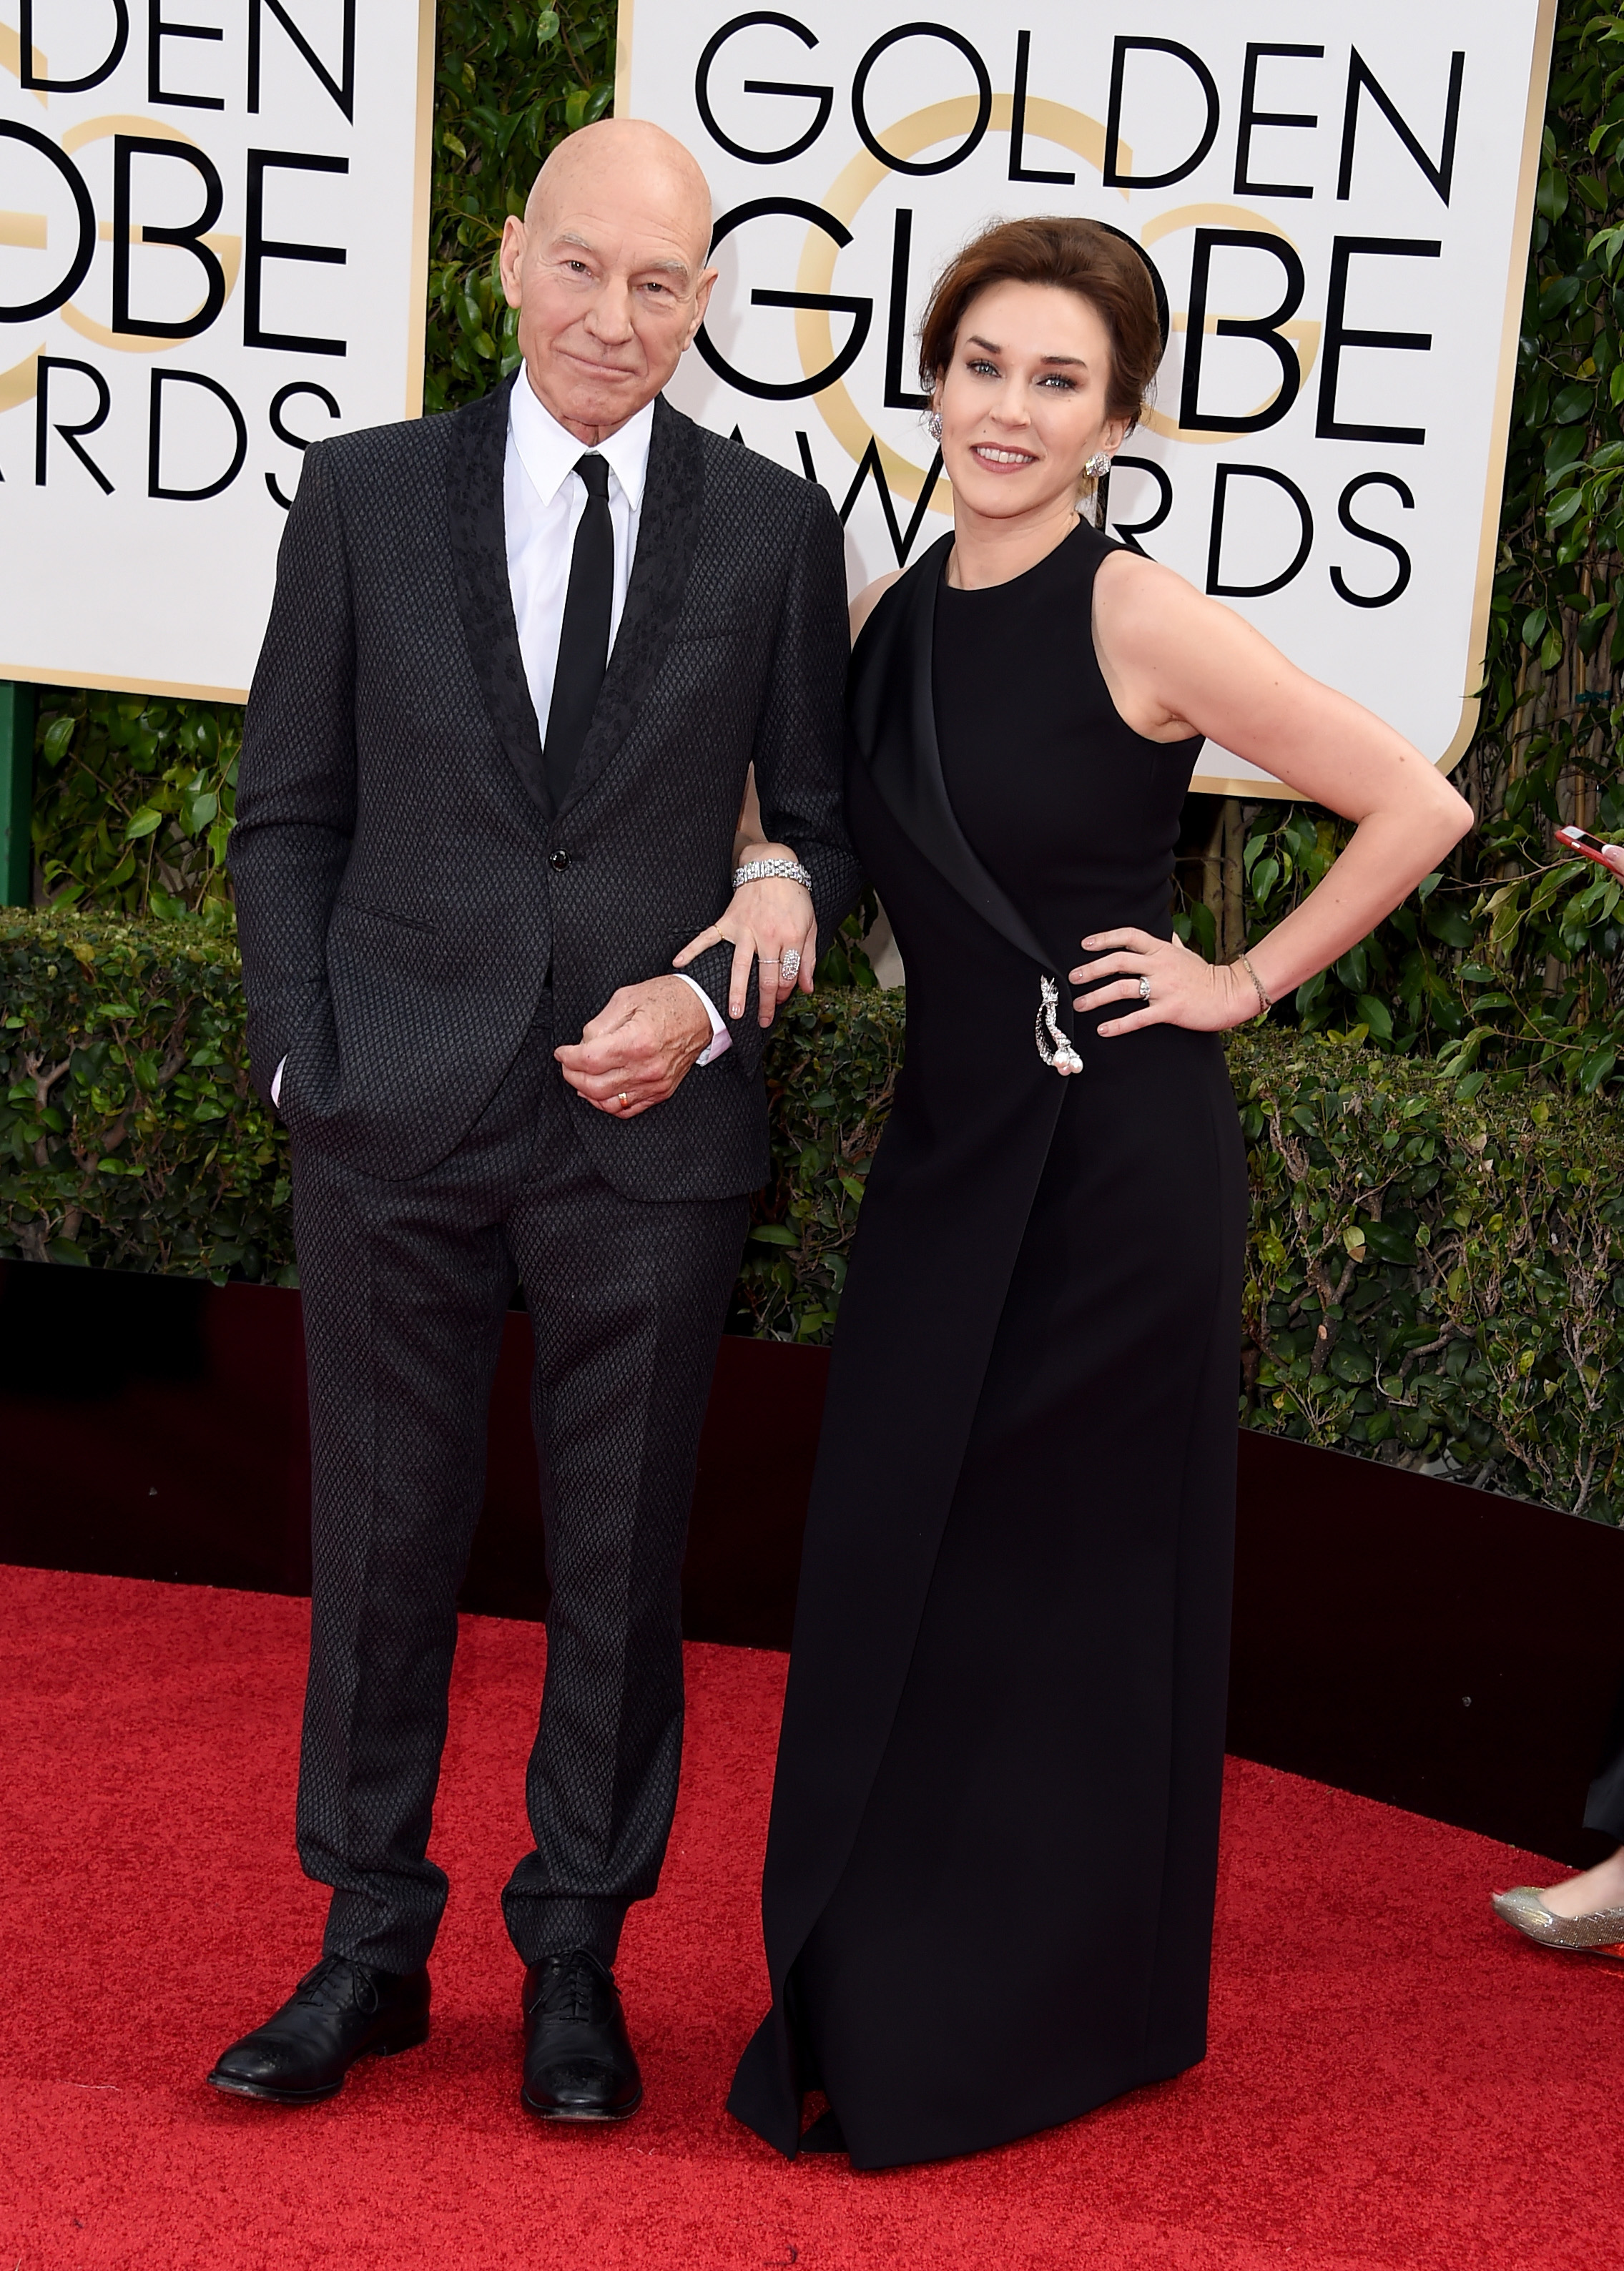 Patrick Stewart and Sunny Ozell arrive to the 73rd Annual Golden Globe Awards on Jan. 10, 2016 in Beverly Hills.